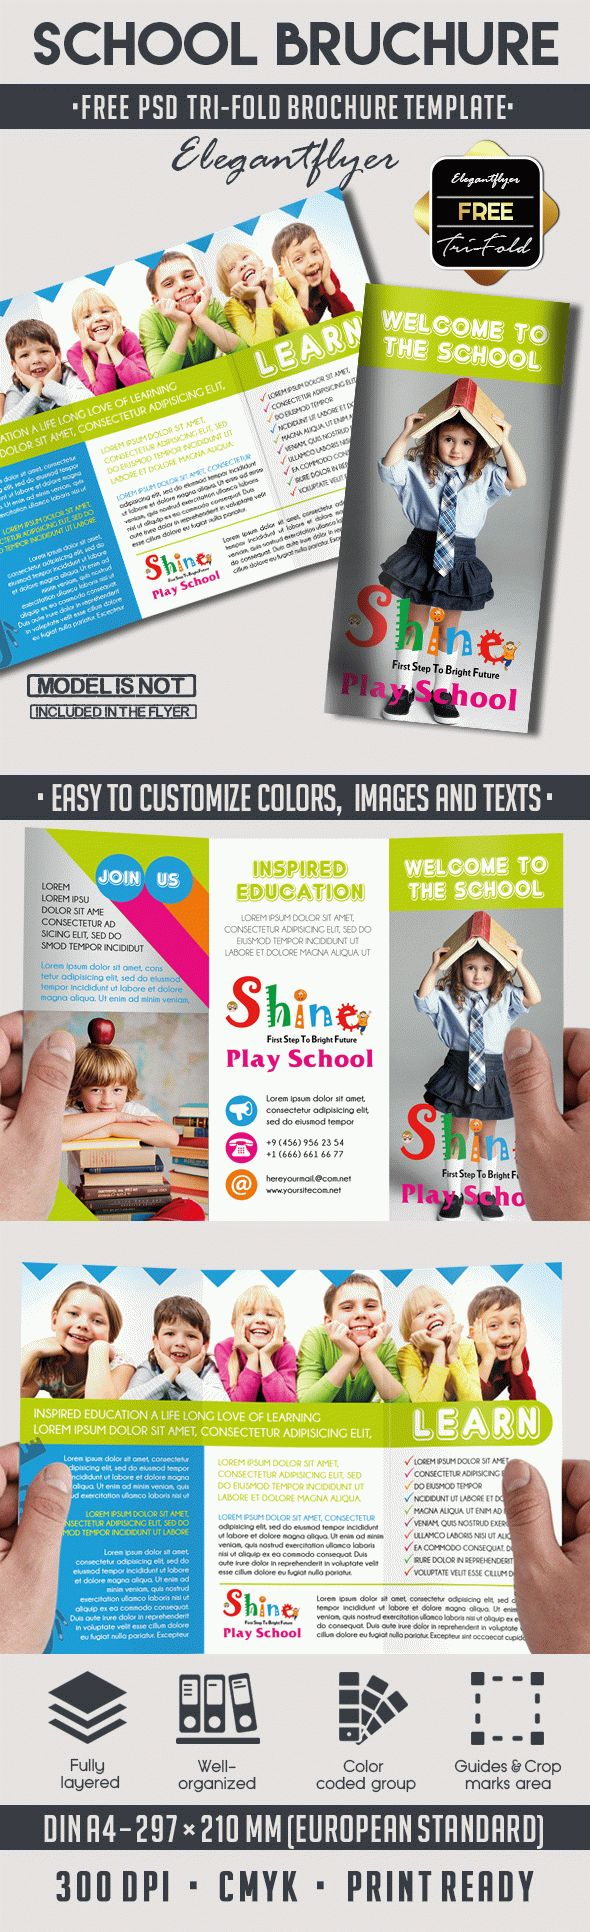 School Free PSD TriFold PSD Brochure Template By ElegantFlyer - School brochure template free